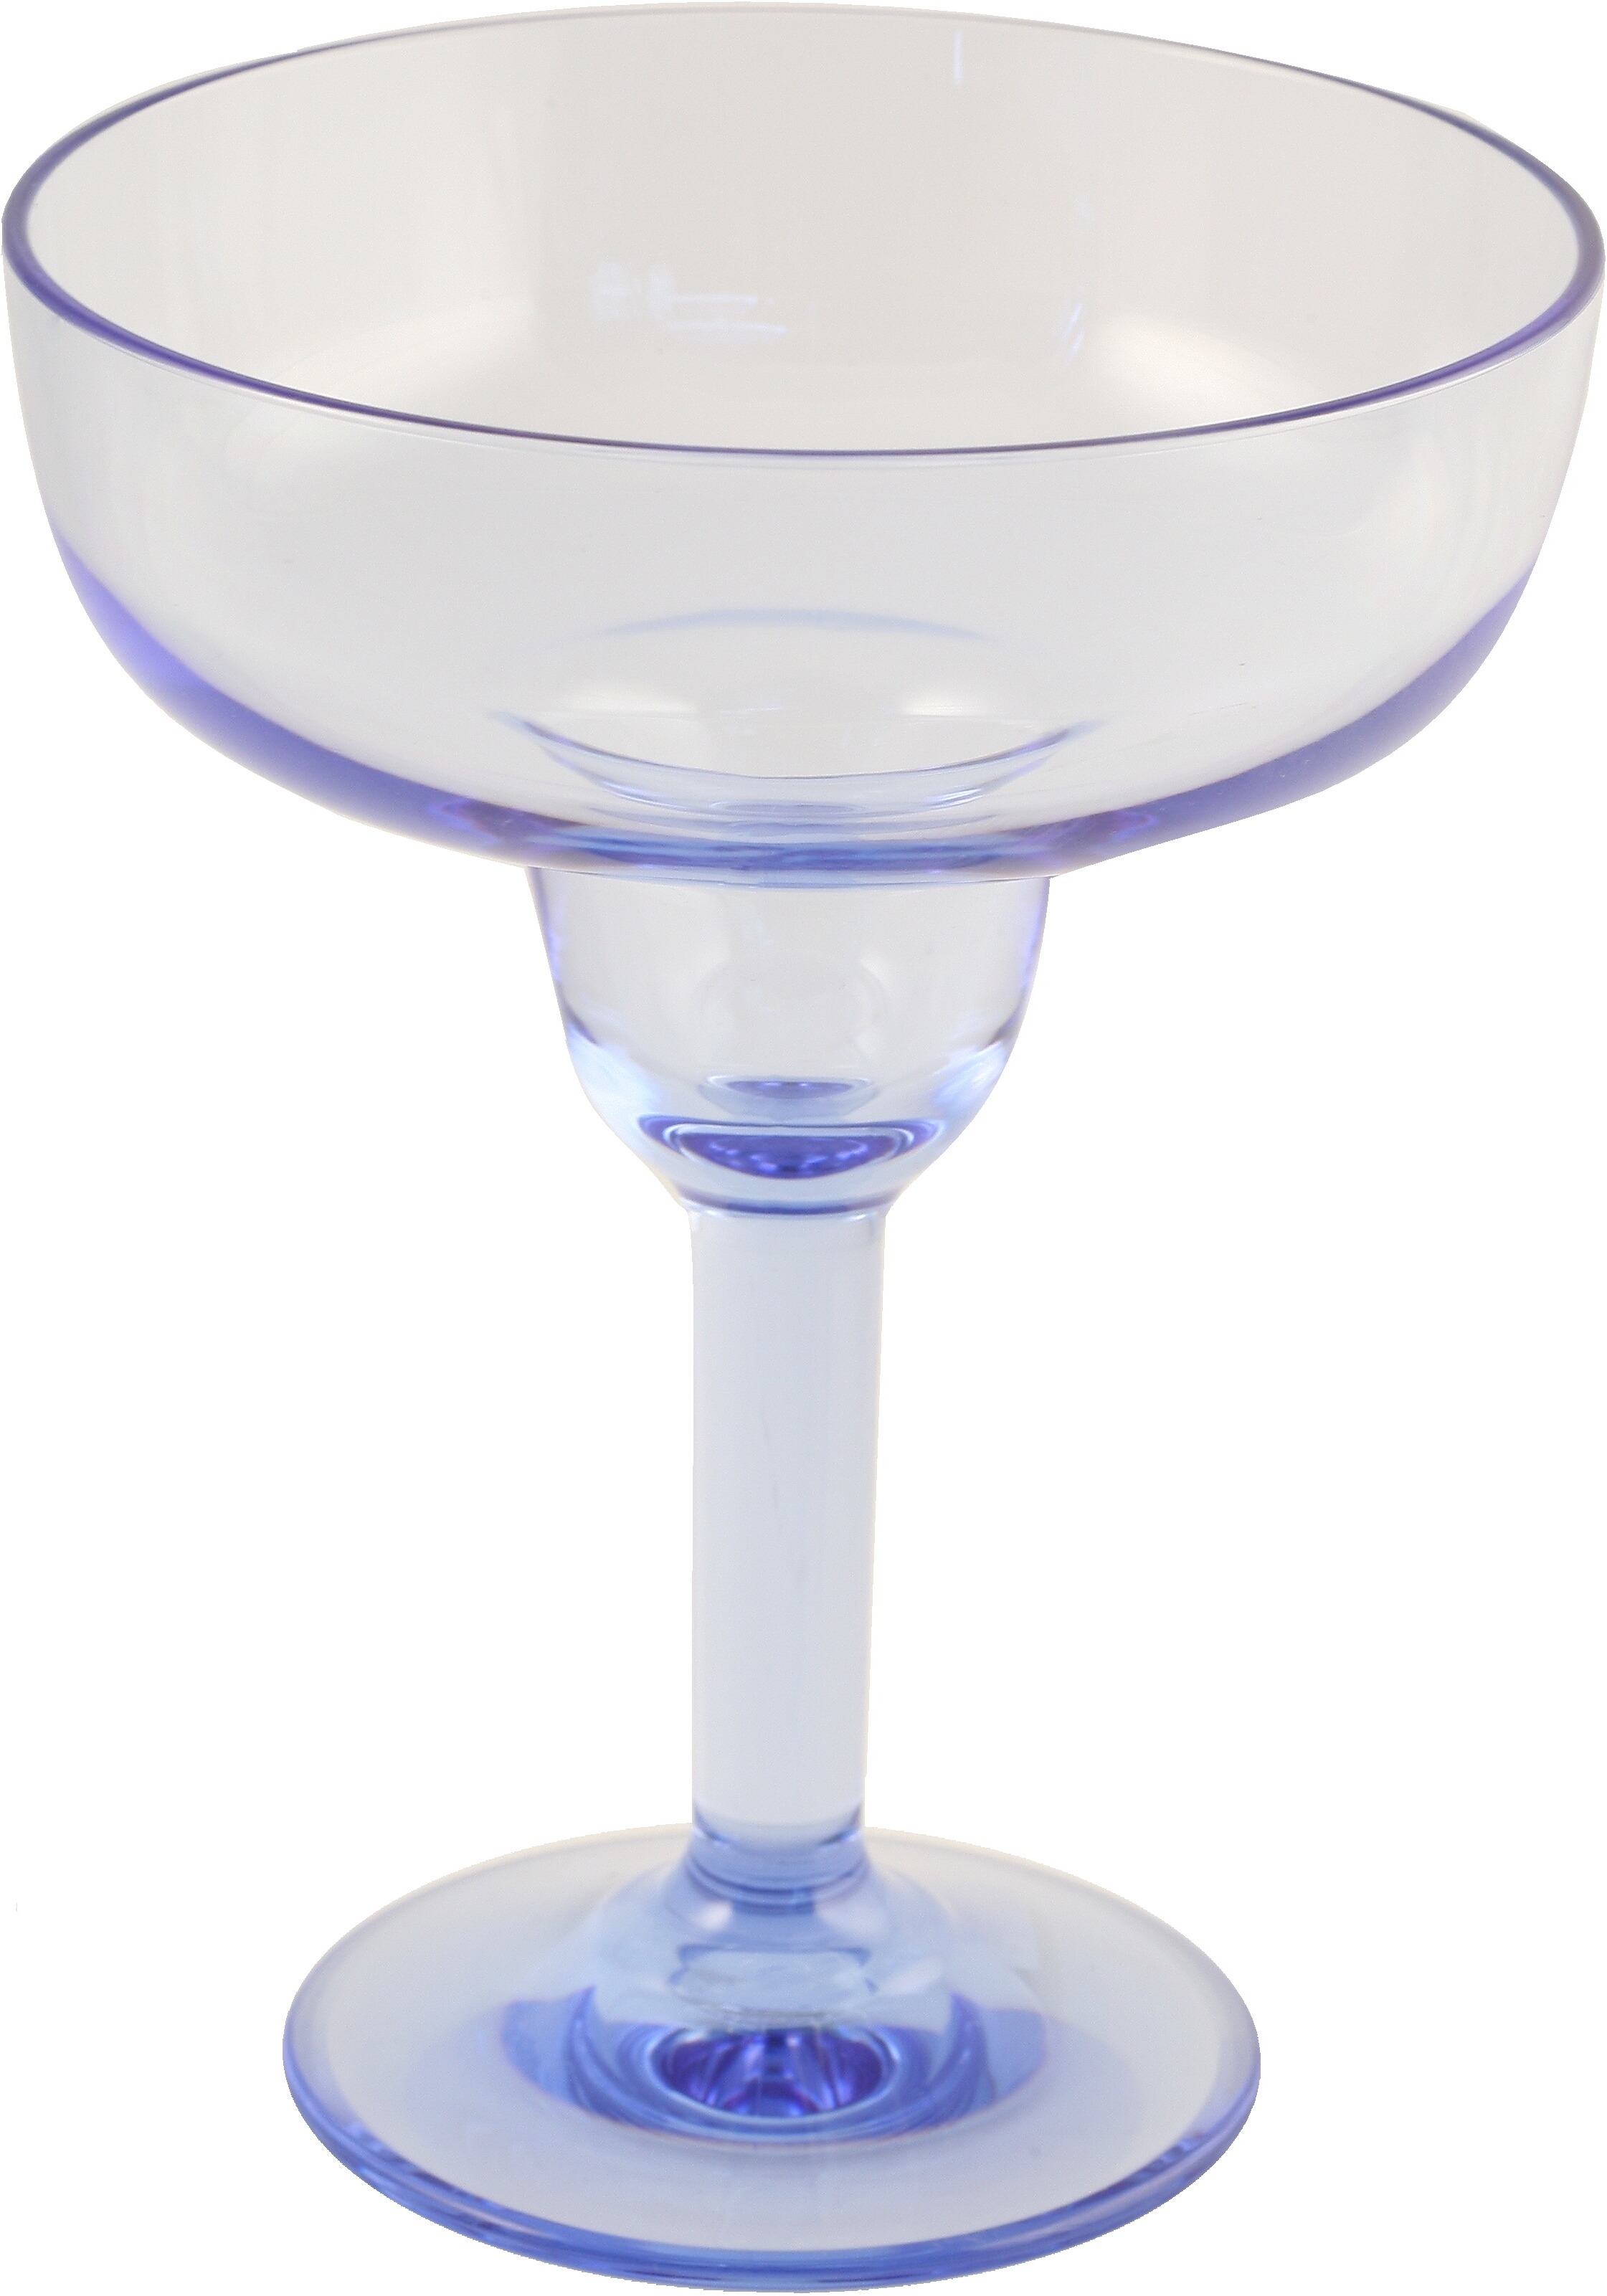 Strahl Design+ Contemporary Pacific Blue Margarita Glass, 16 Ounce